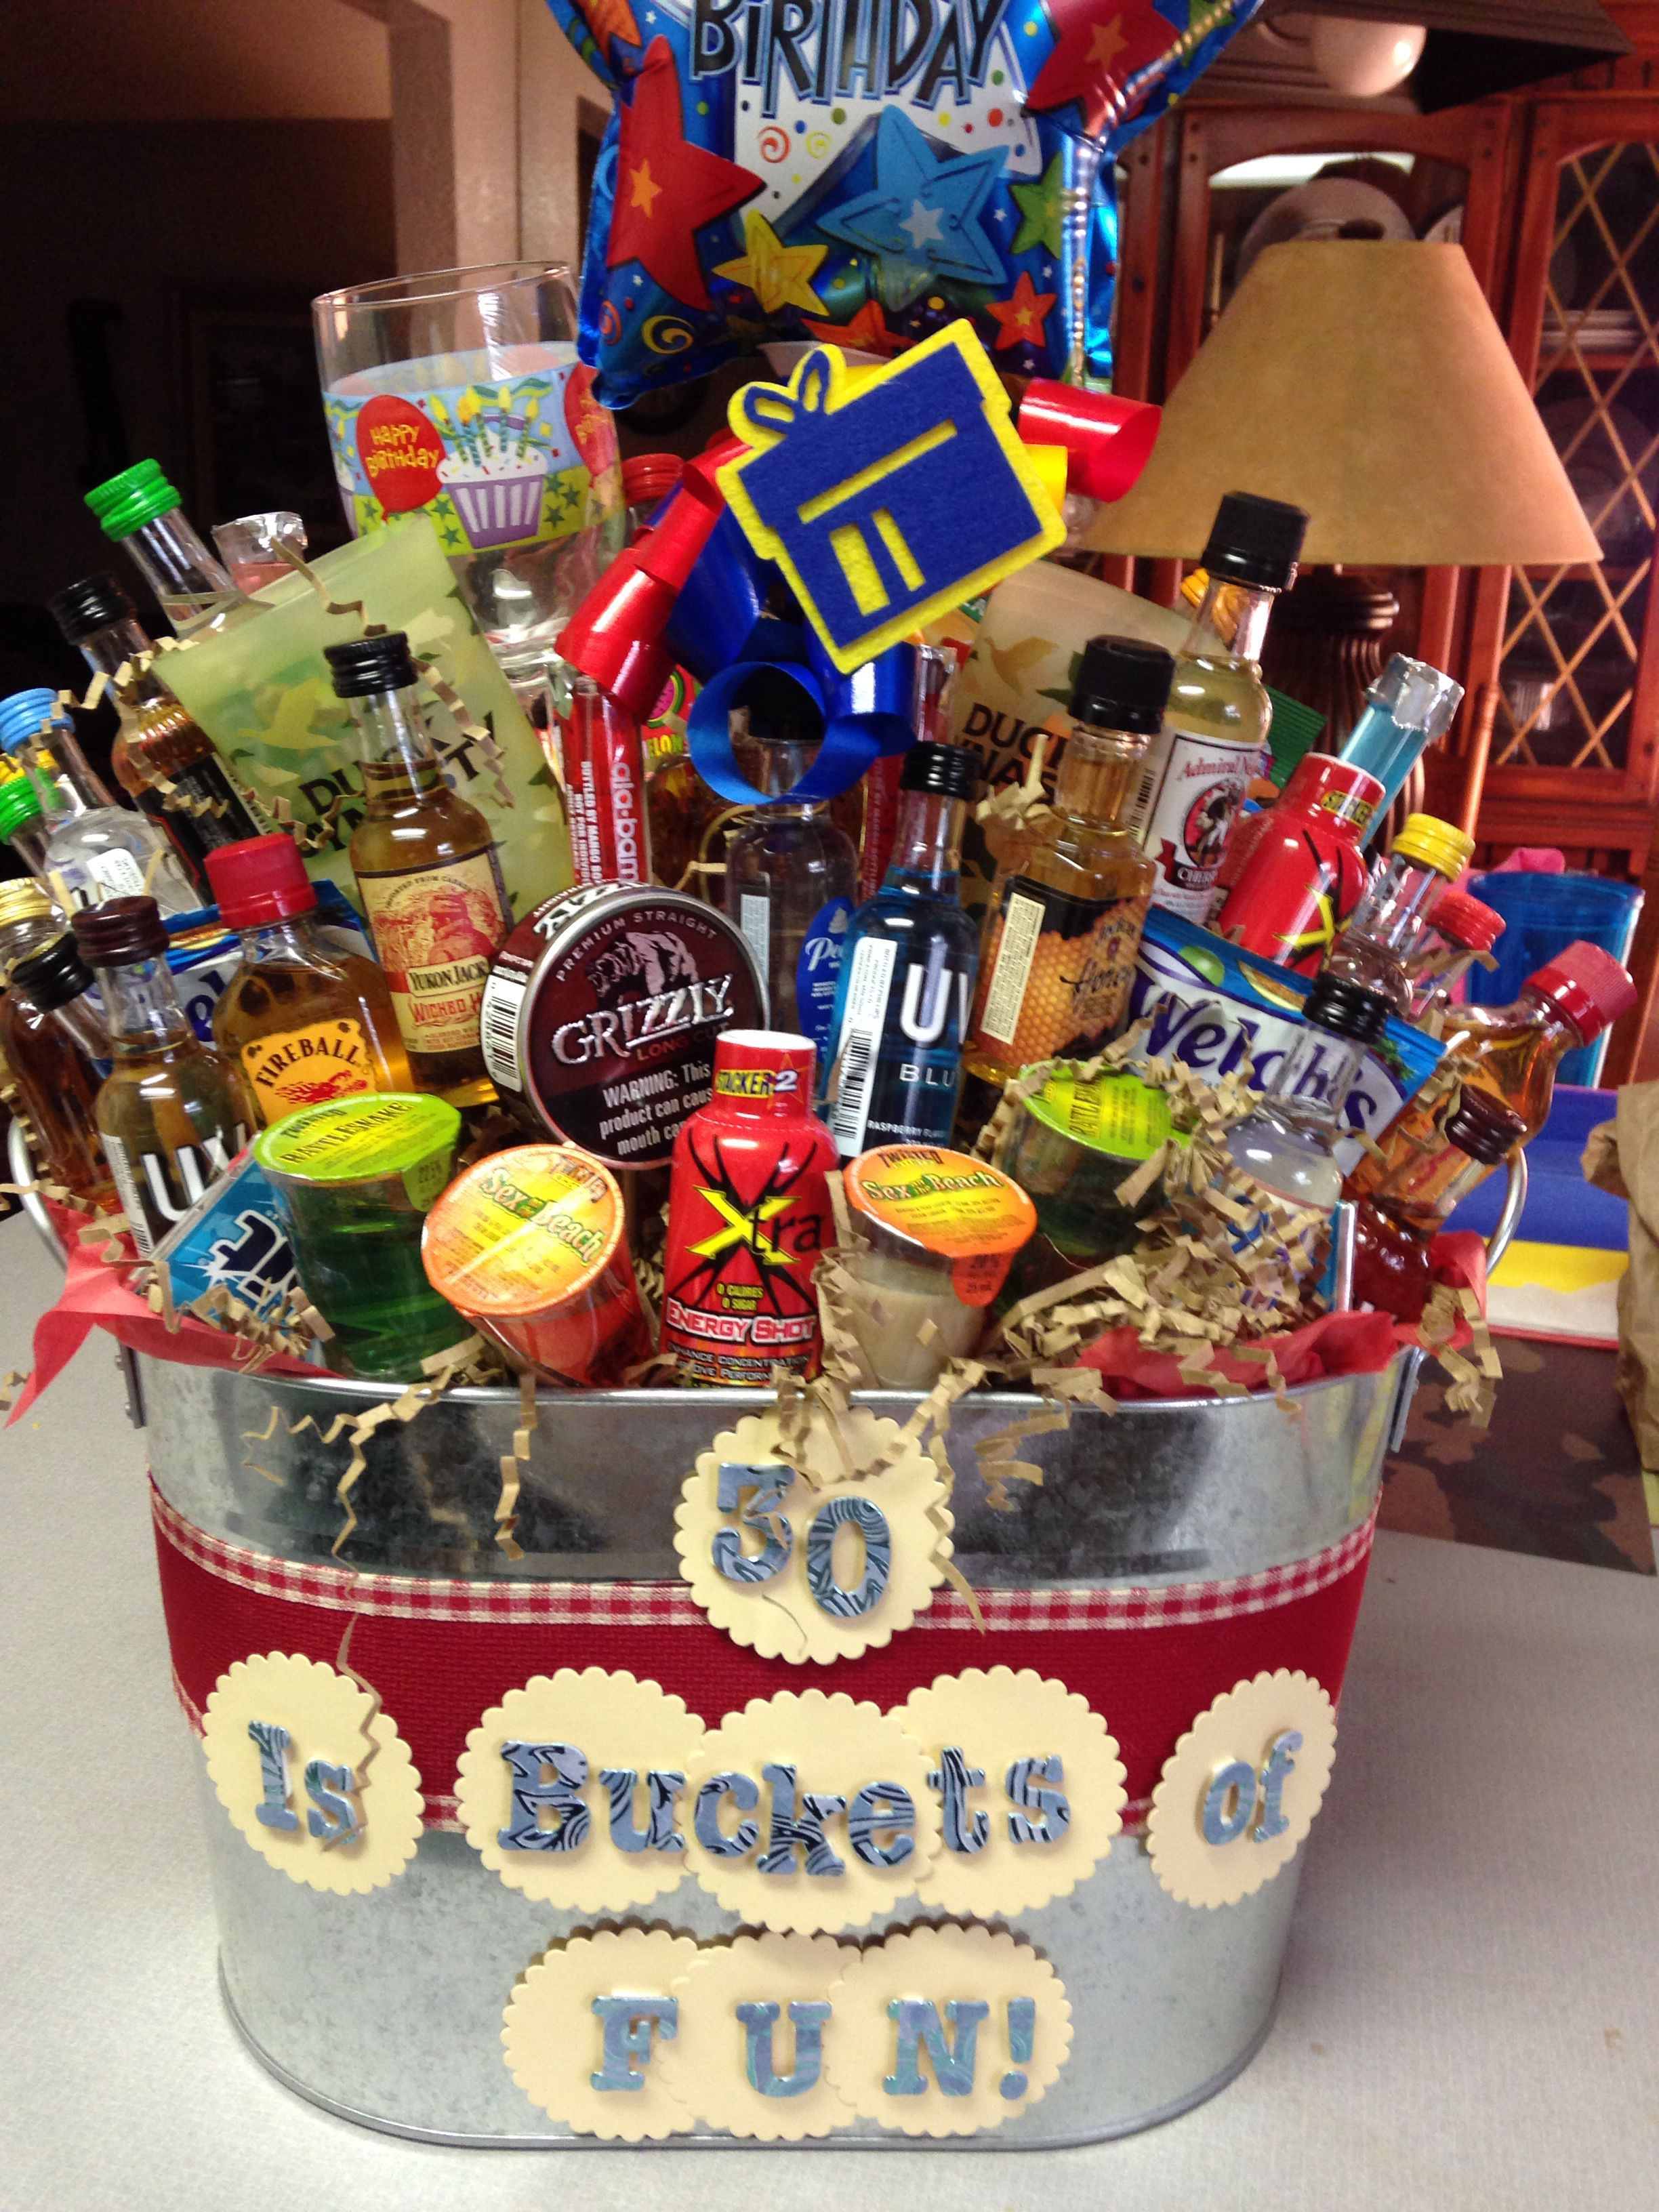 Best ideas about Dirty 30 Birthday Decorations . Save or Pin Turning dirty 30 t basket Cute Stuff Now.